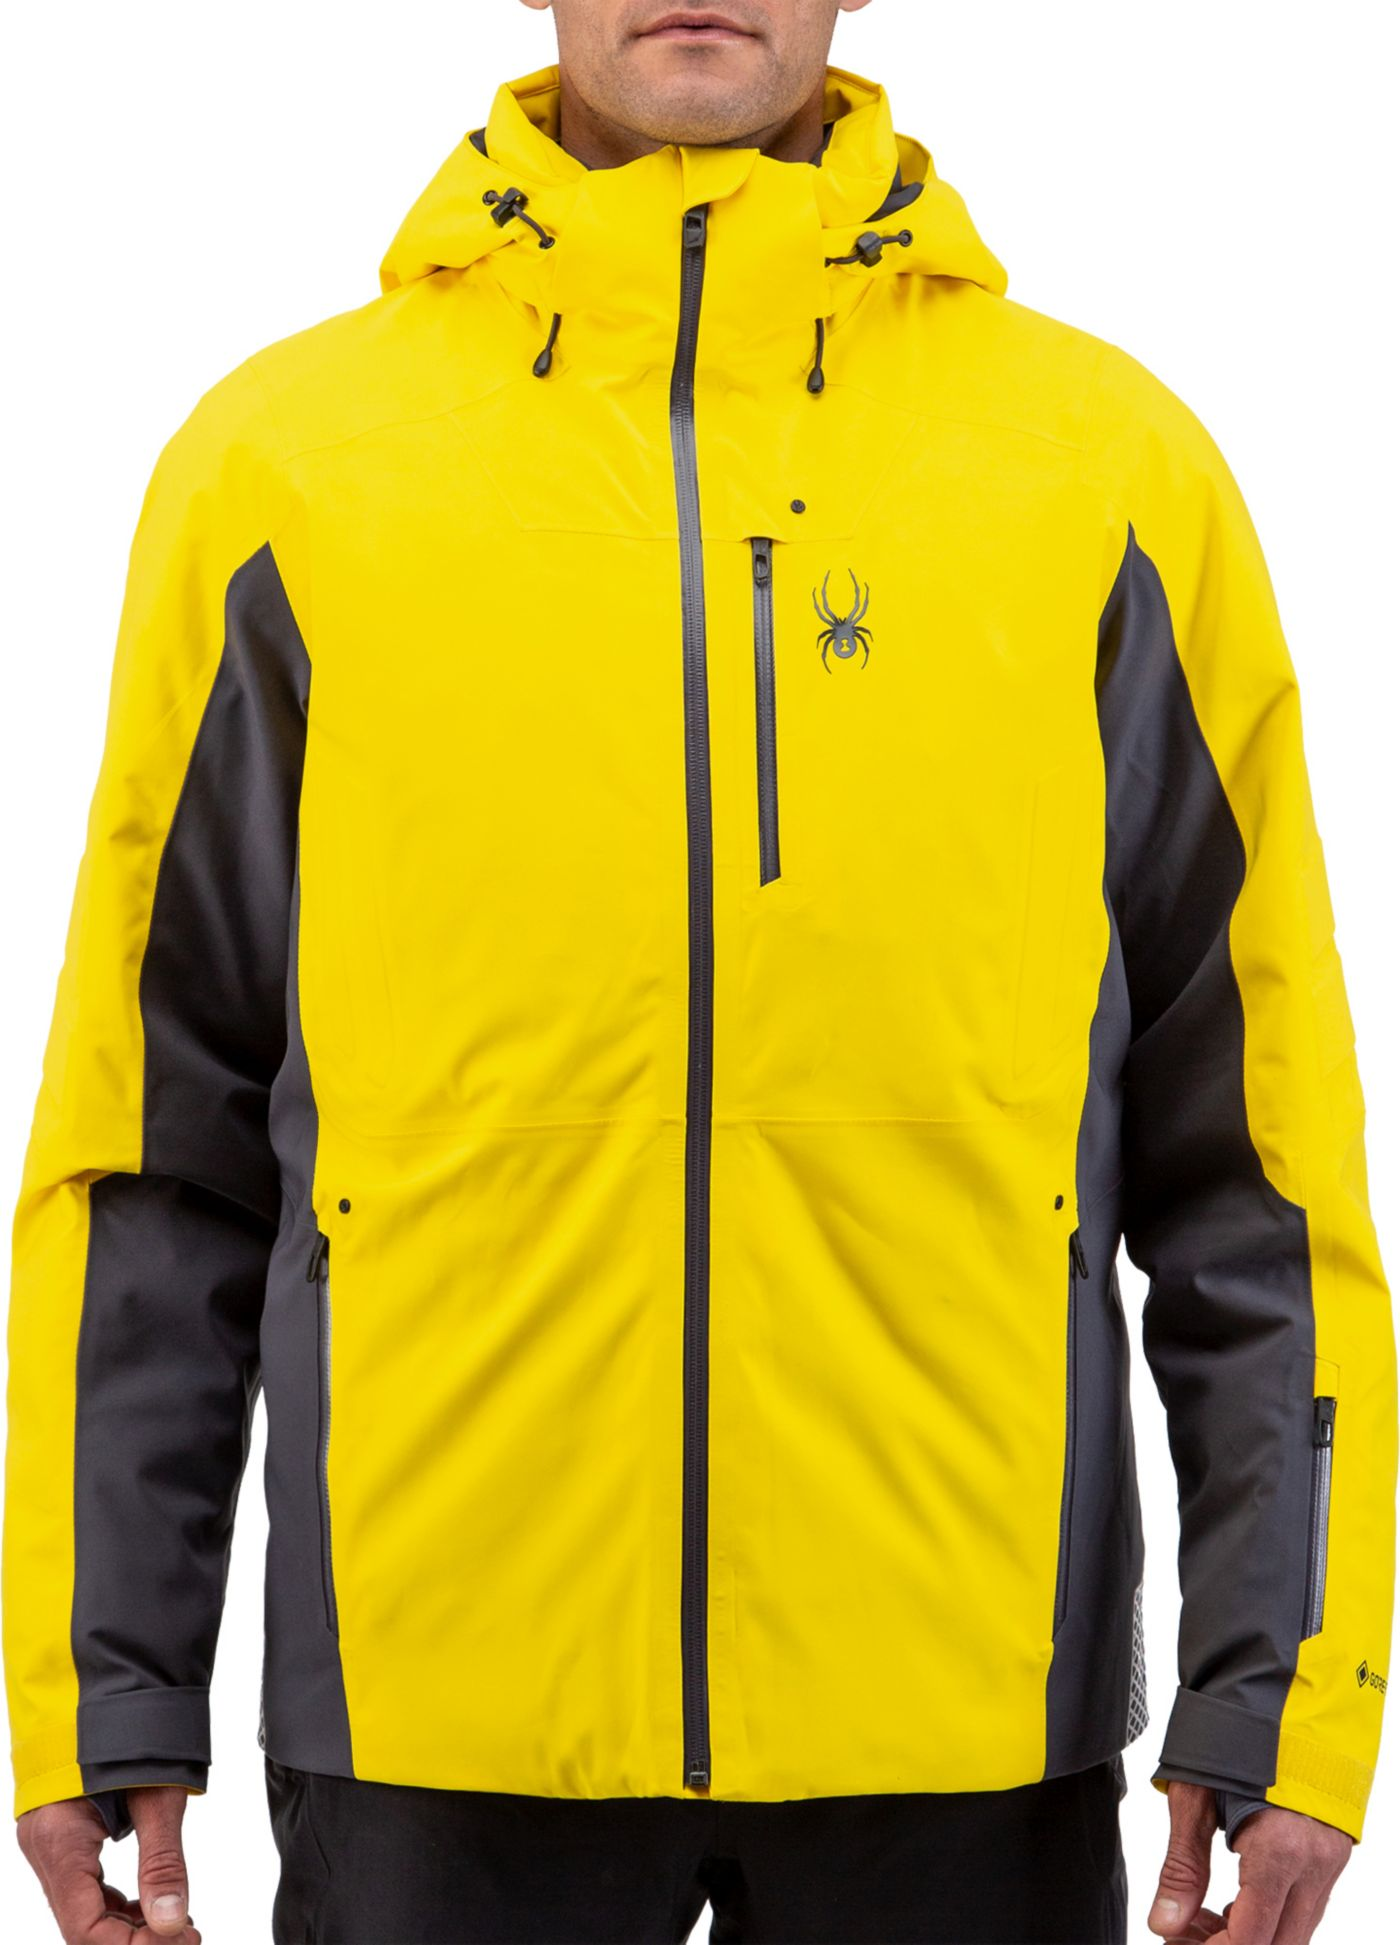 Spyder Men's Orbiter GTX Ski Jacket